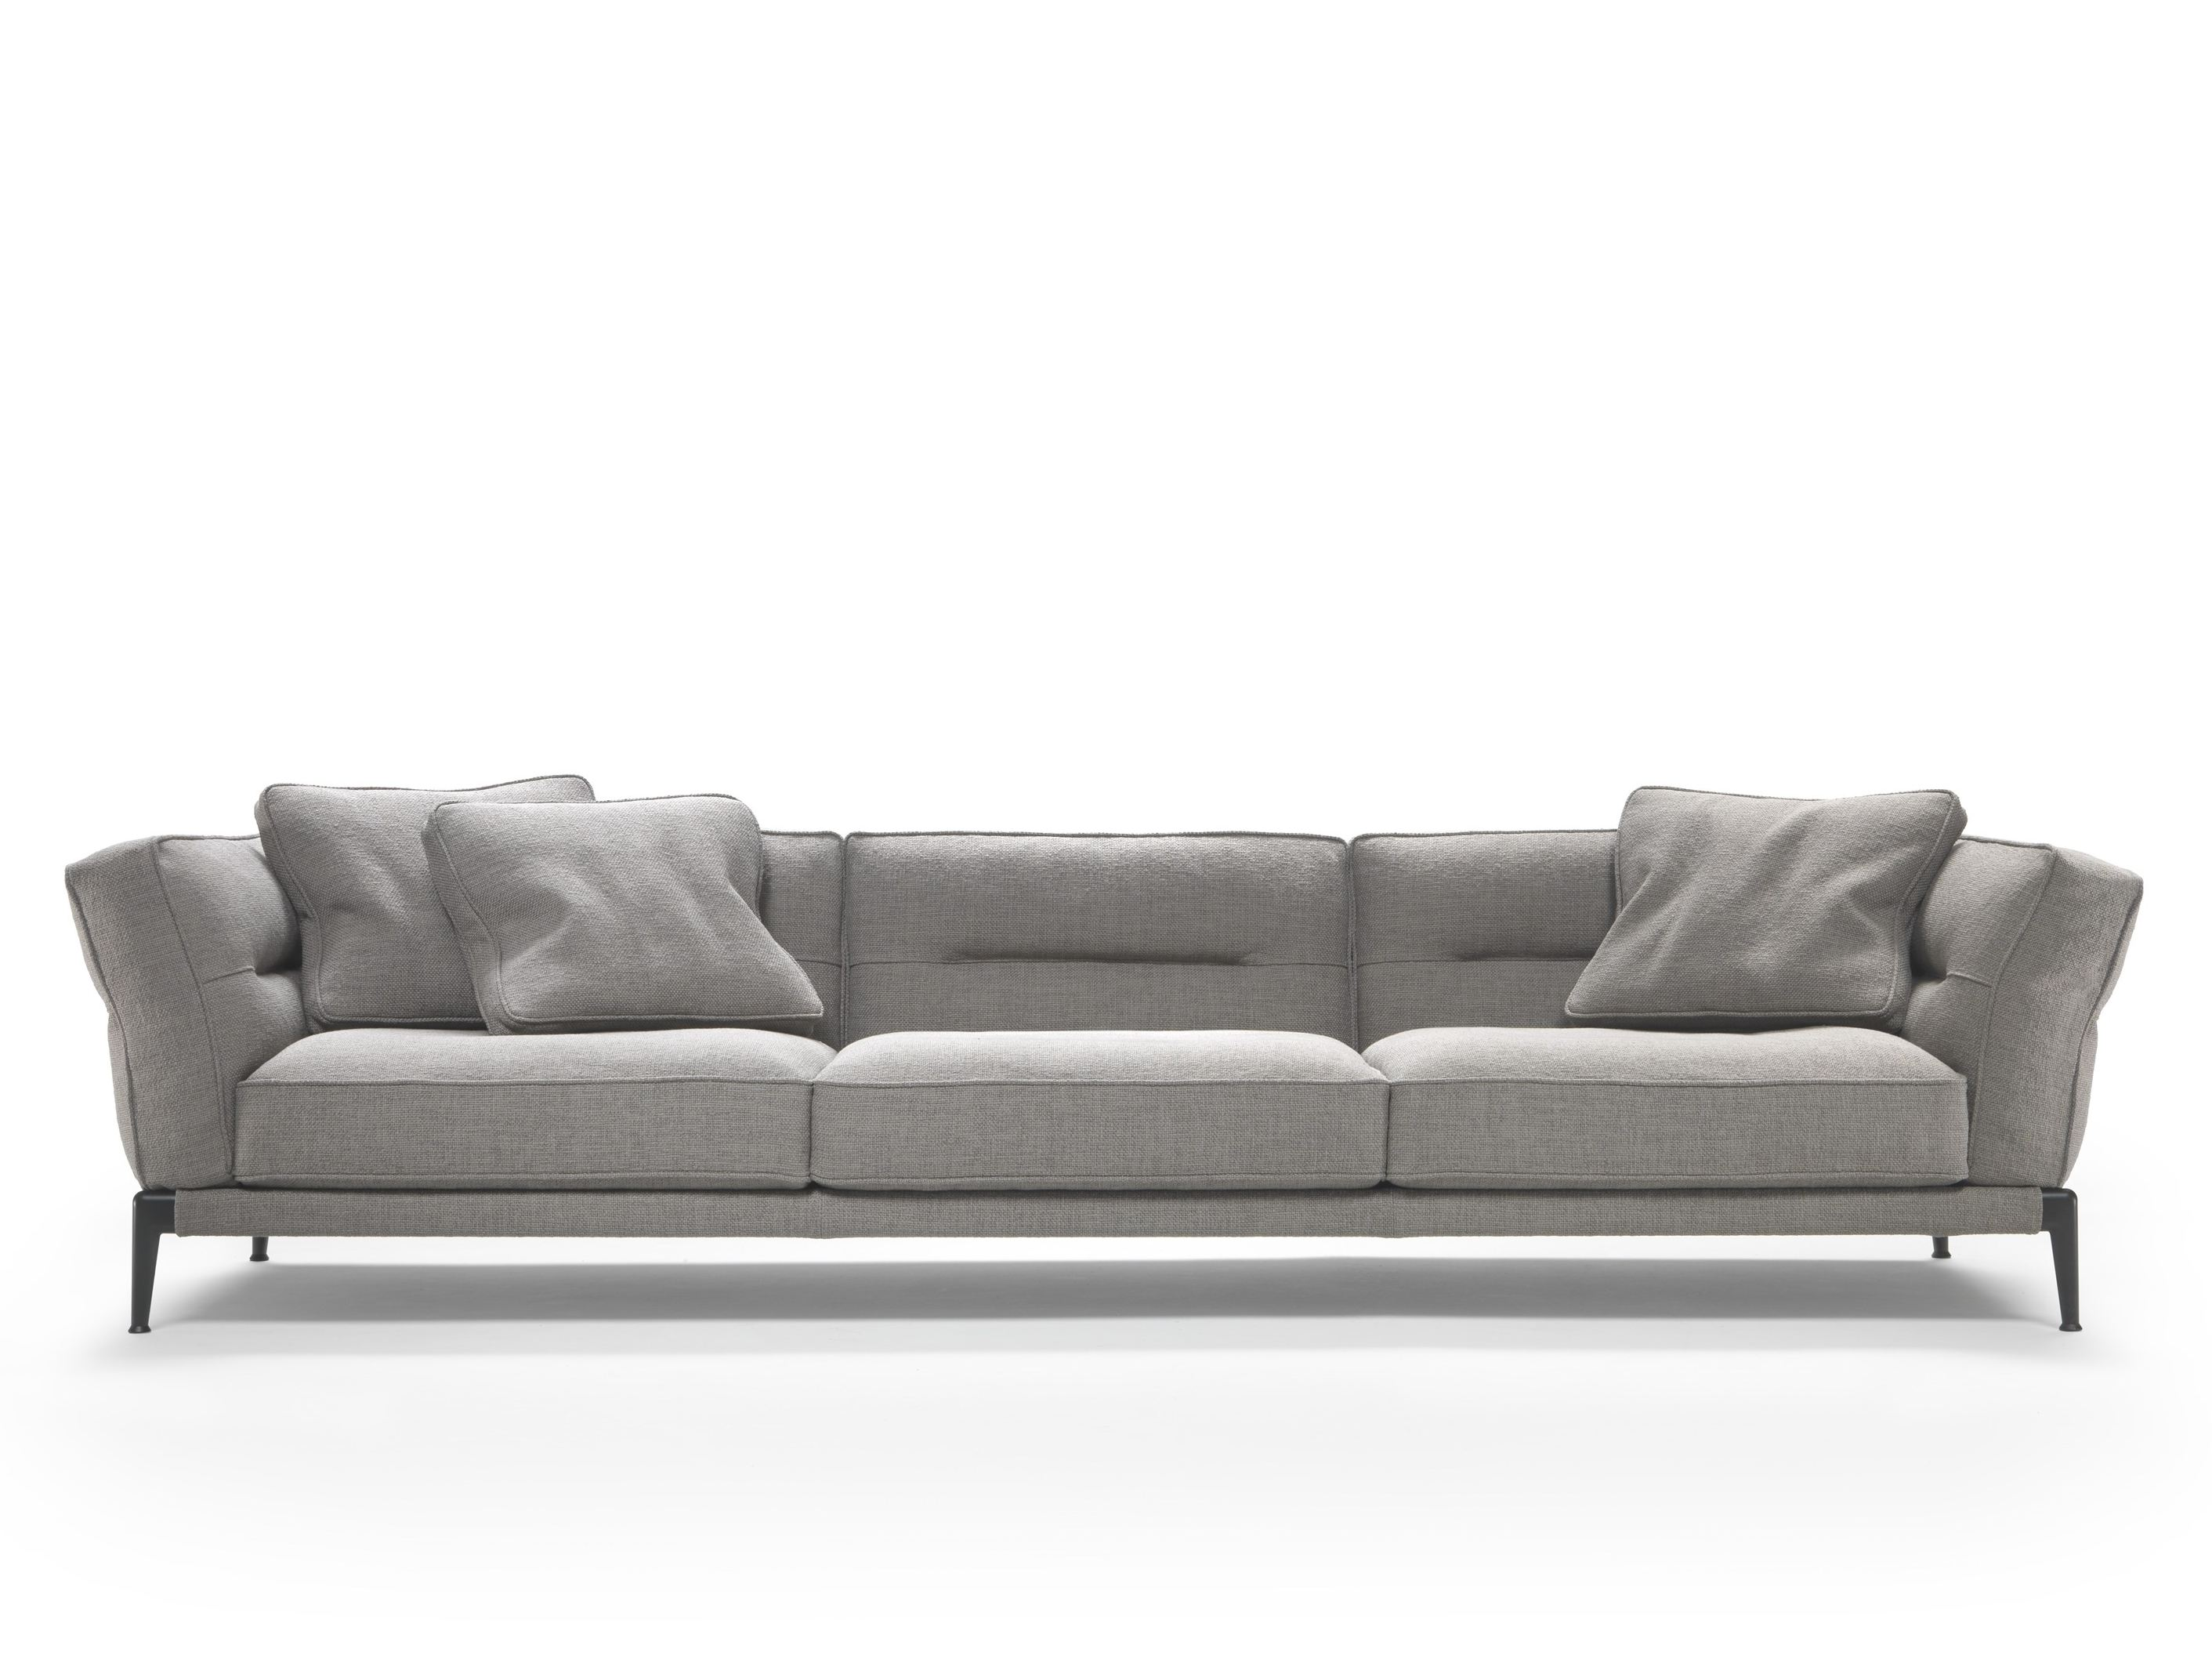 adda sofa by flexform design antonio citterio. Black Bedroom Furniture Sets. Home Design Ideas